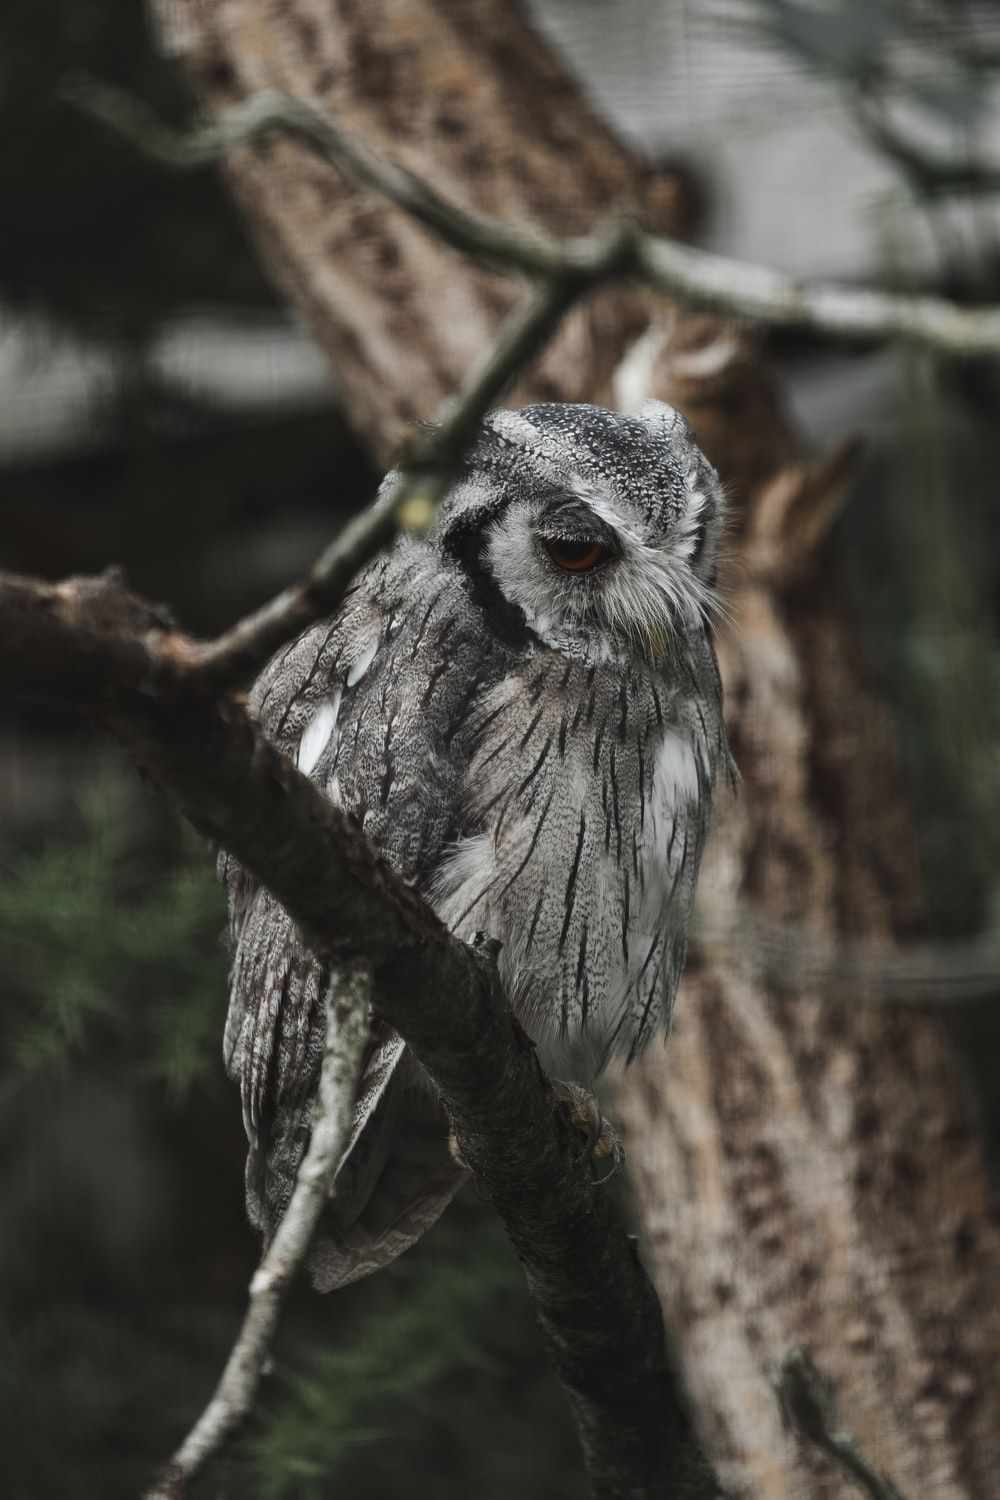 gray owl on brown tree branch during daytime